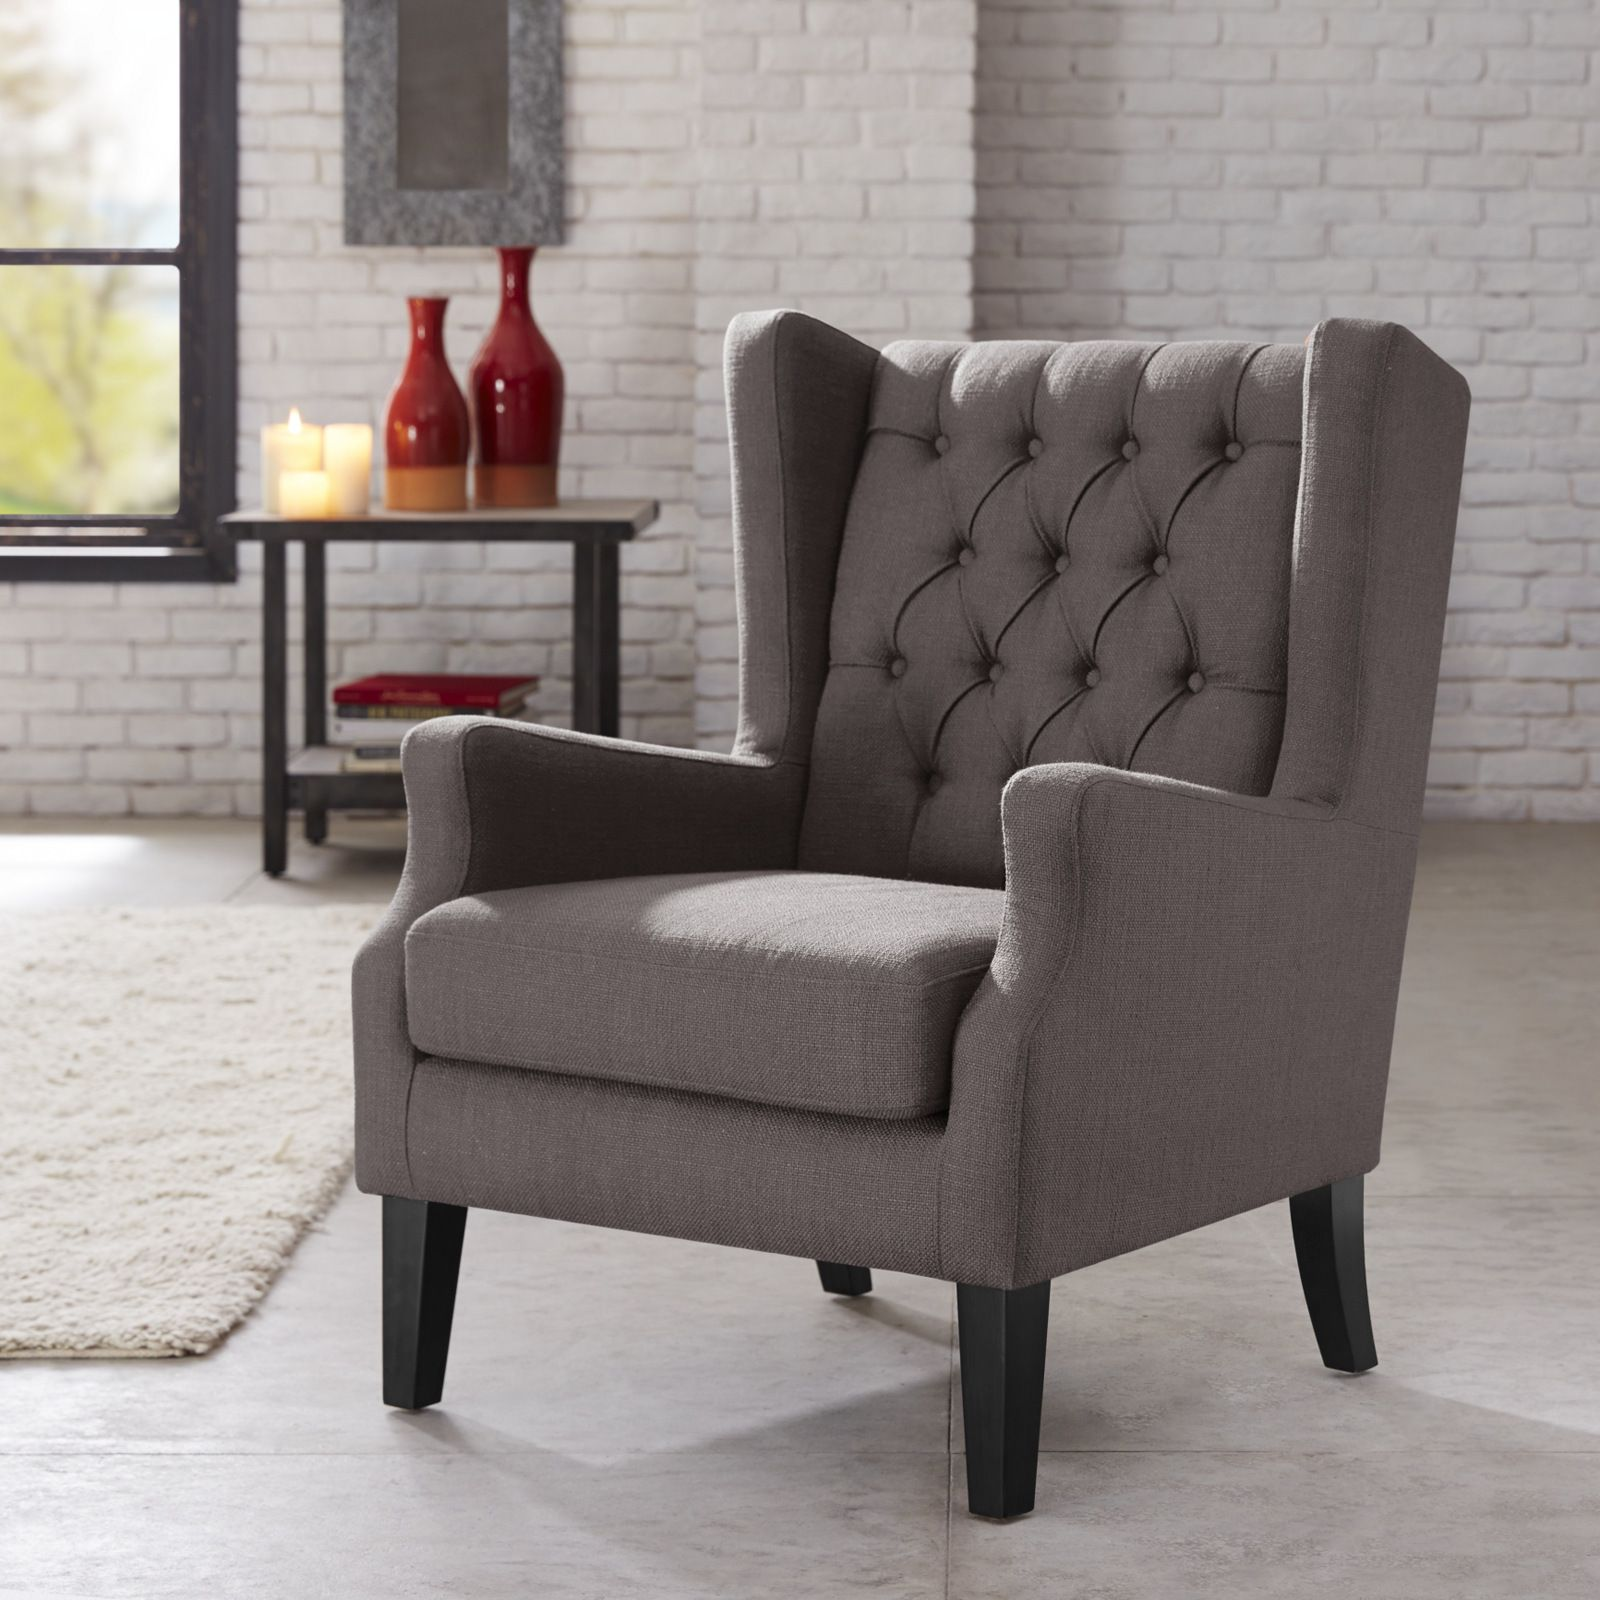 this classic wing chair with its button tufted detailing and sloped arms adds a casual twist